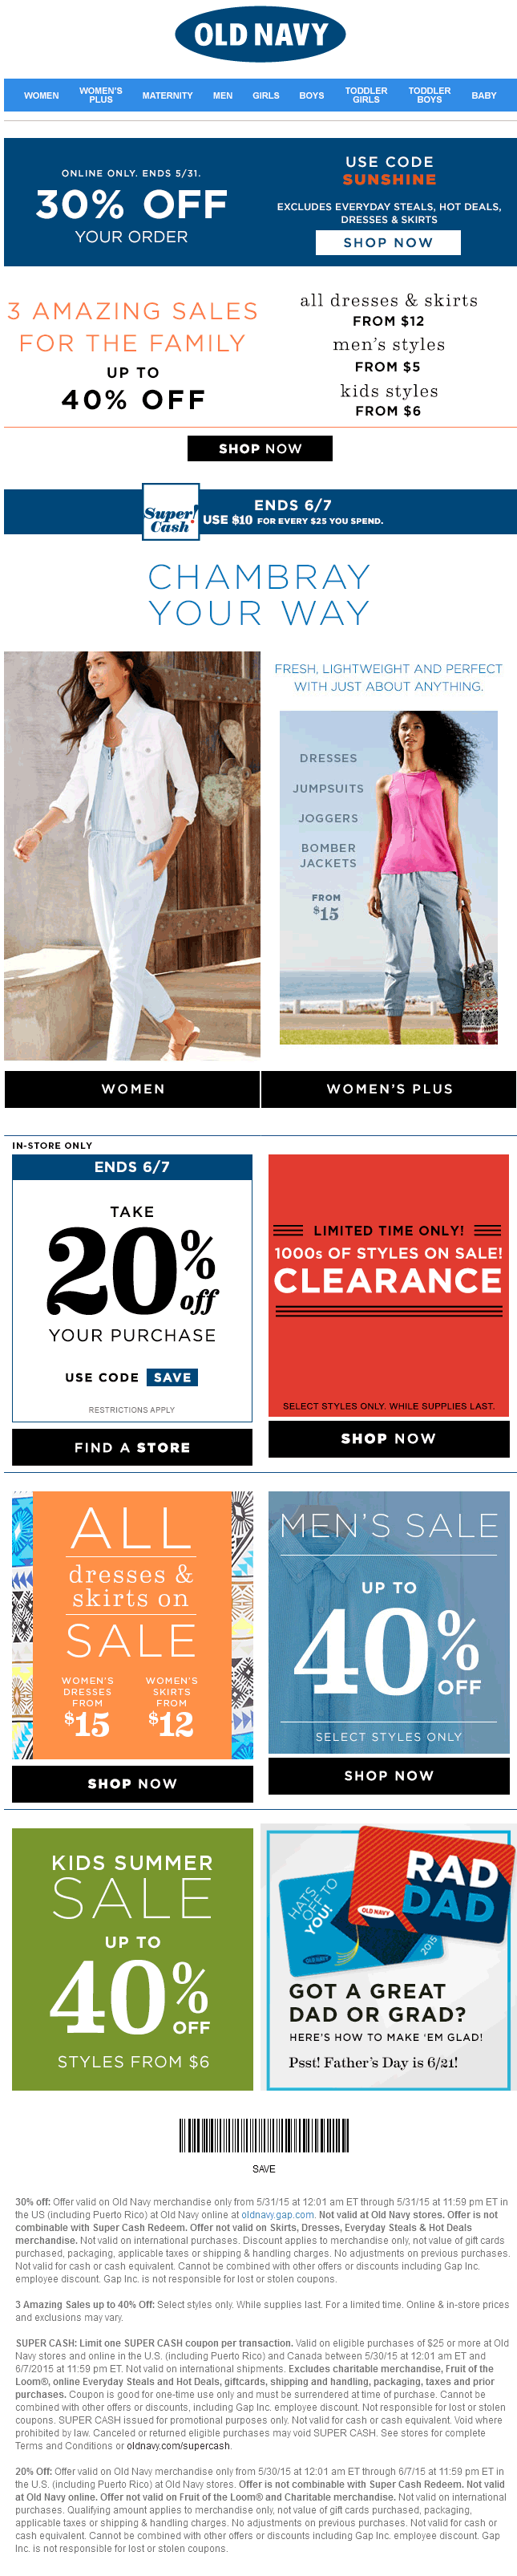 Old Navy Coupon May 2018 20% off at Old Navy, or 30% online via promo code SUNSHINE